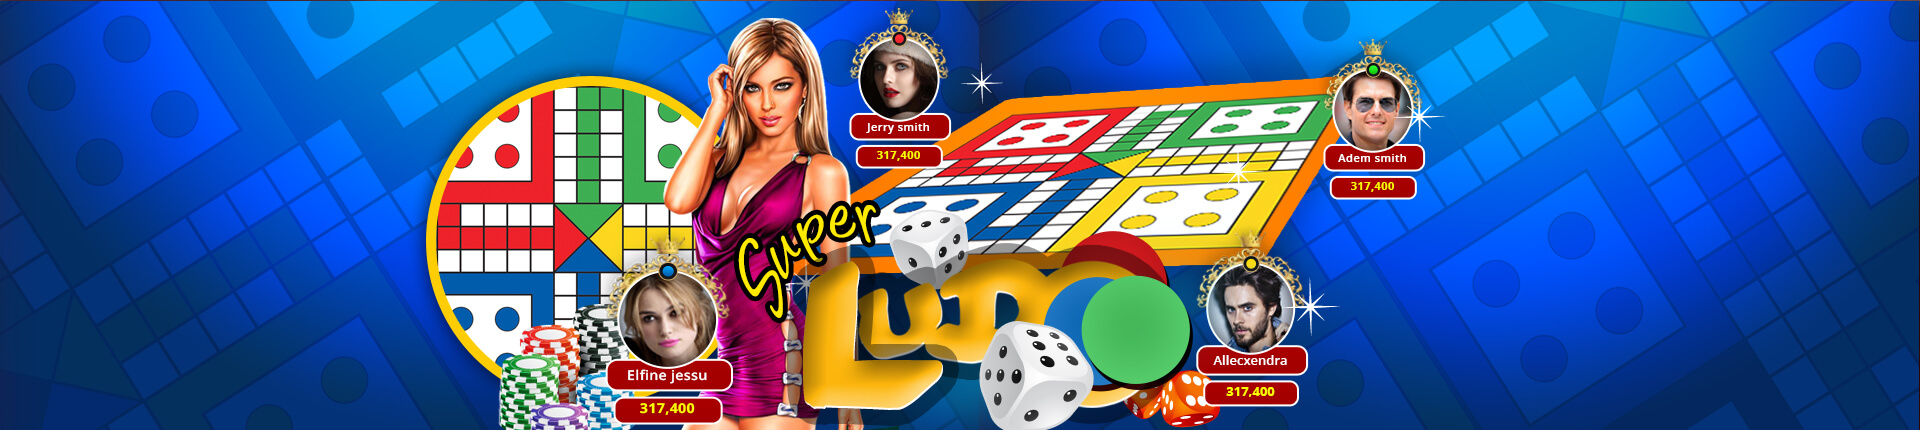 Ludo Game Development Service Providers USA